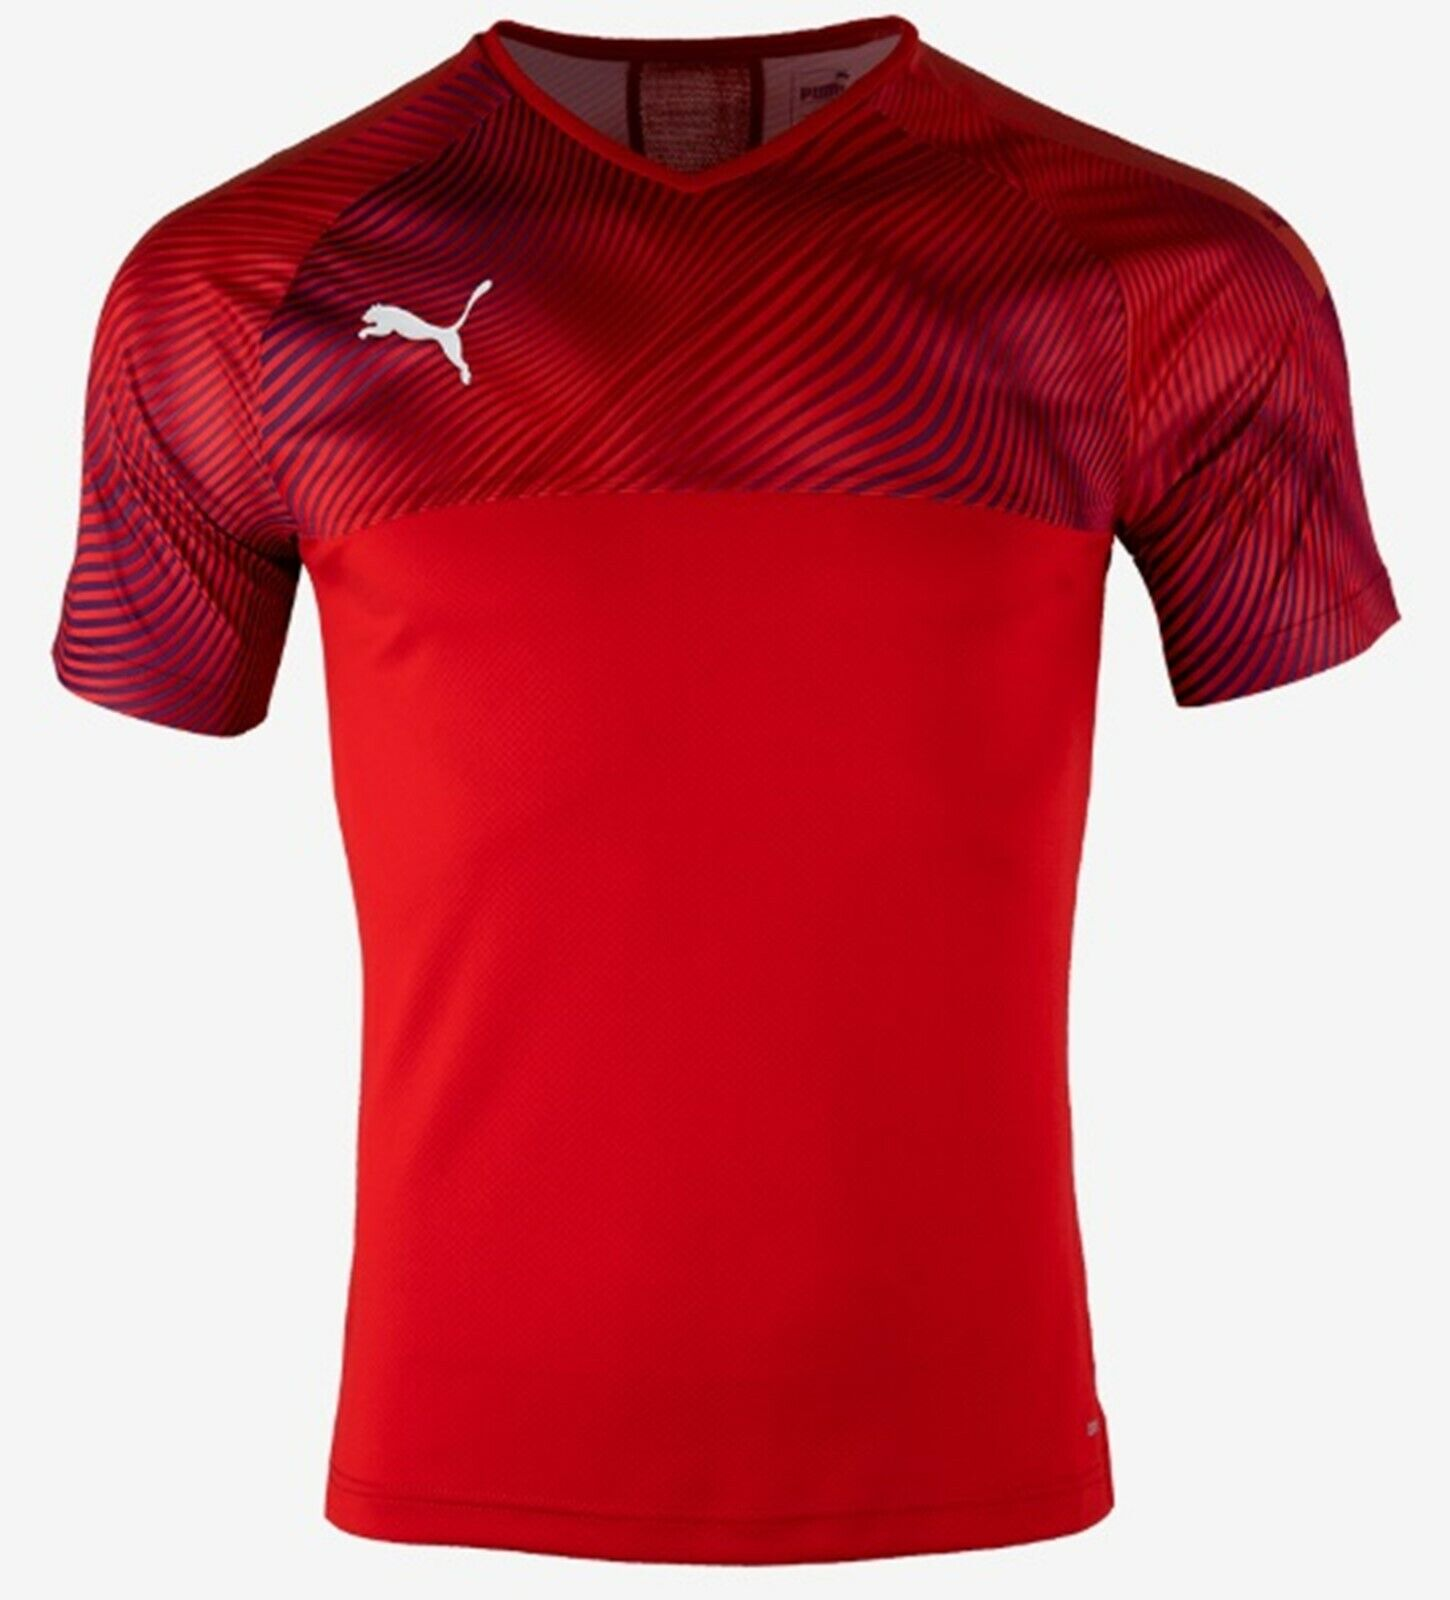 PUMA Men Cup Training Shirts S S Run Dry-Cell Jersey Red Tee Top Shirt 70406601